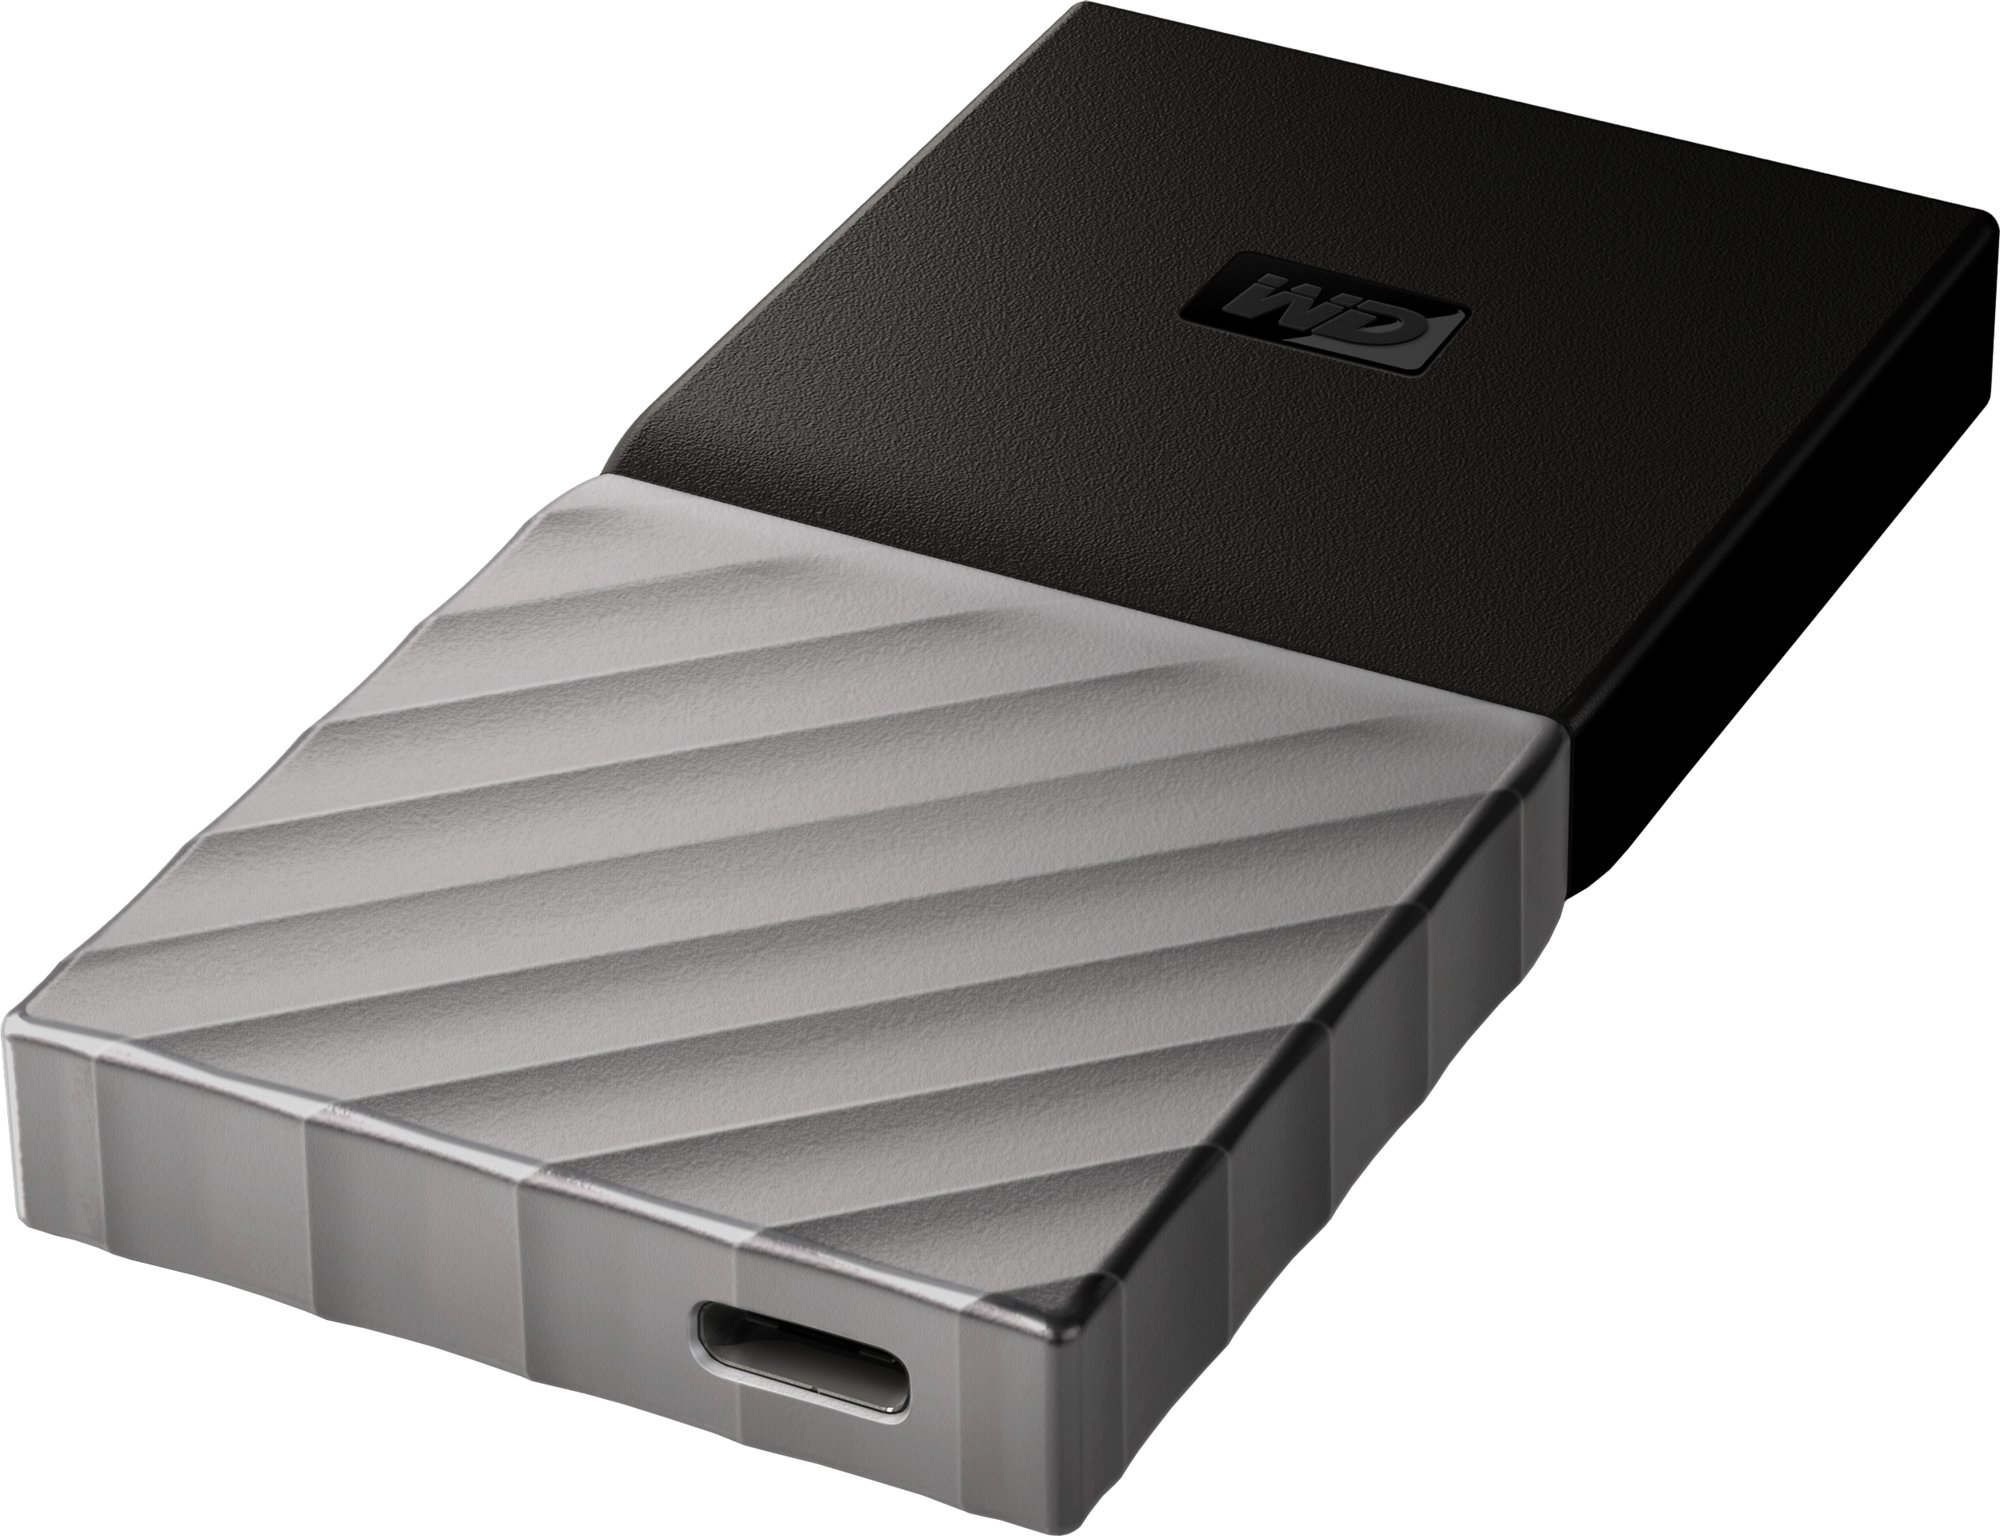 WD My Passport SSD 512GB Ext. USB3.1 Type C , Silver/Black